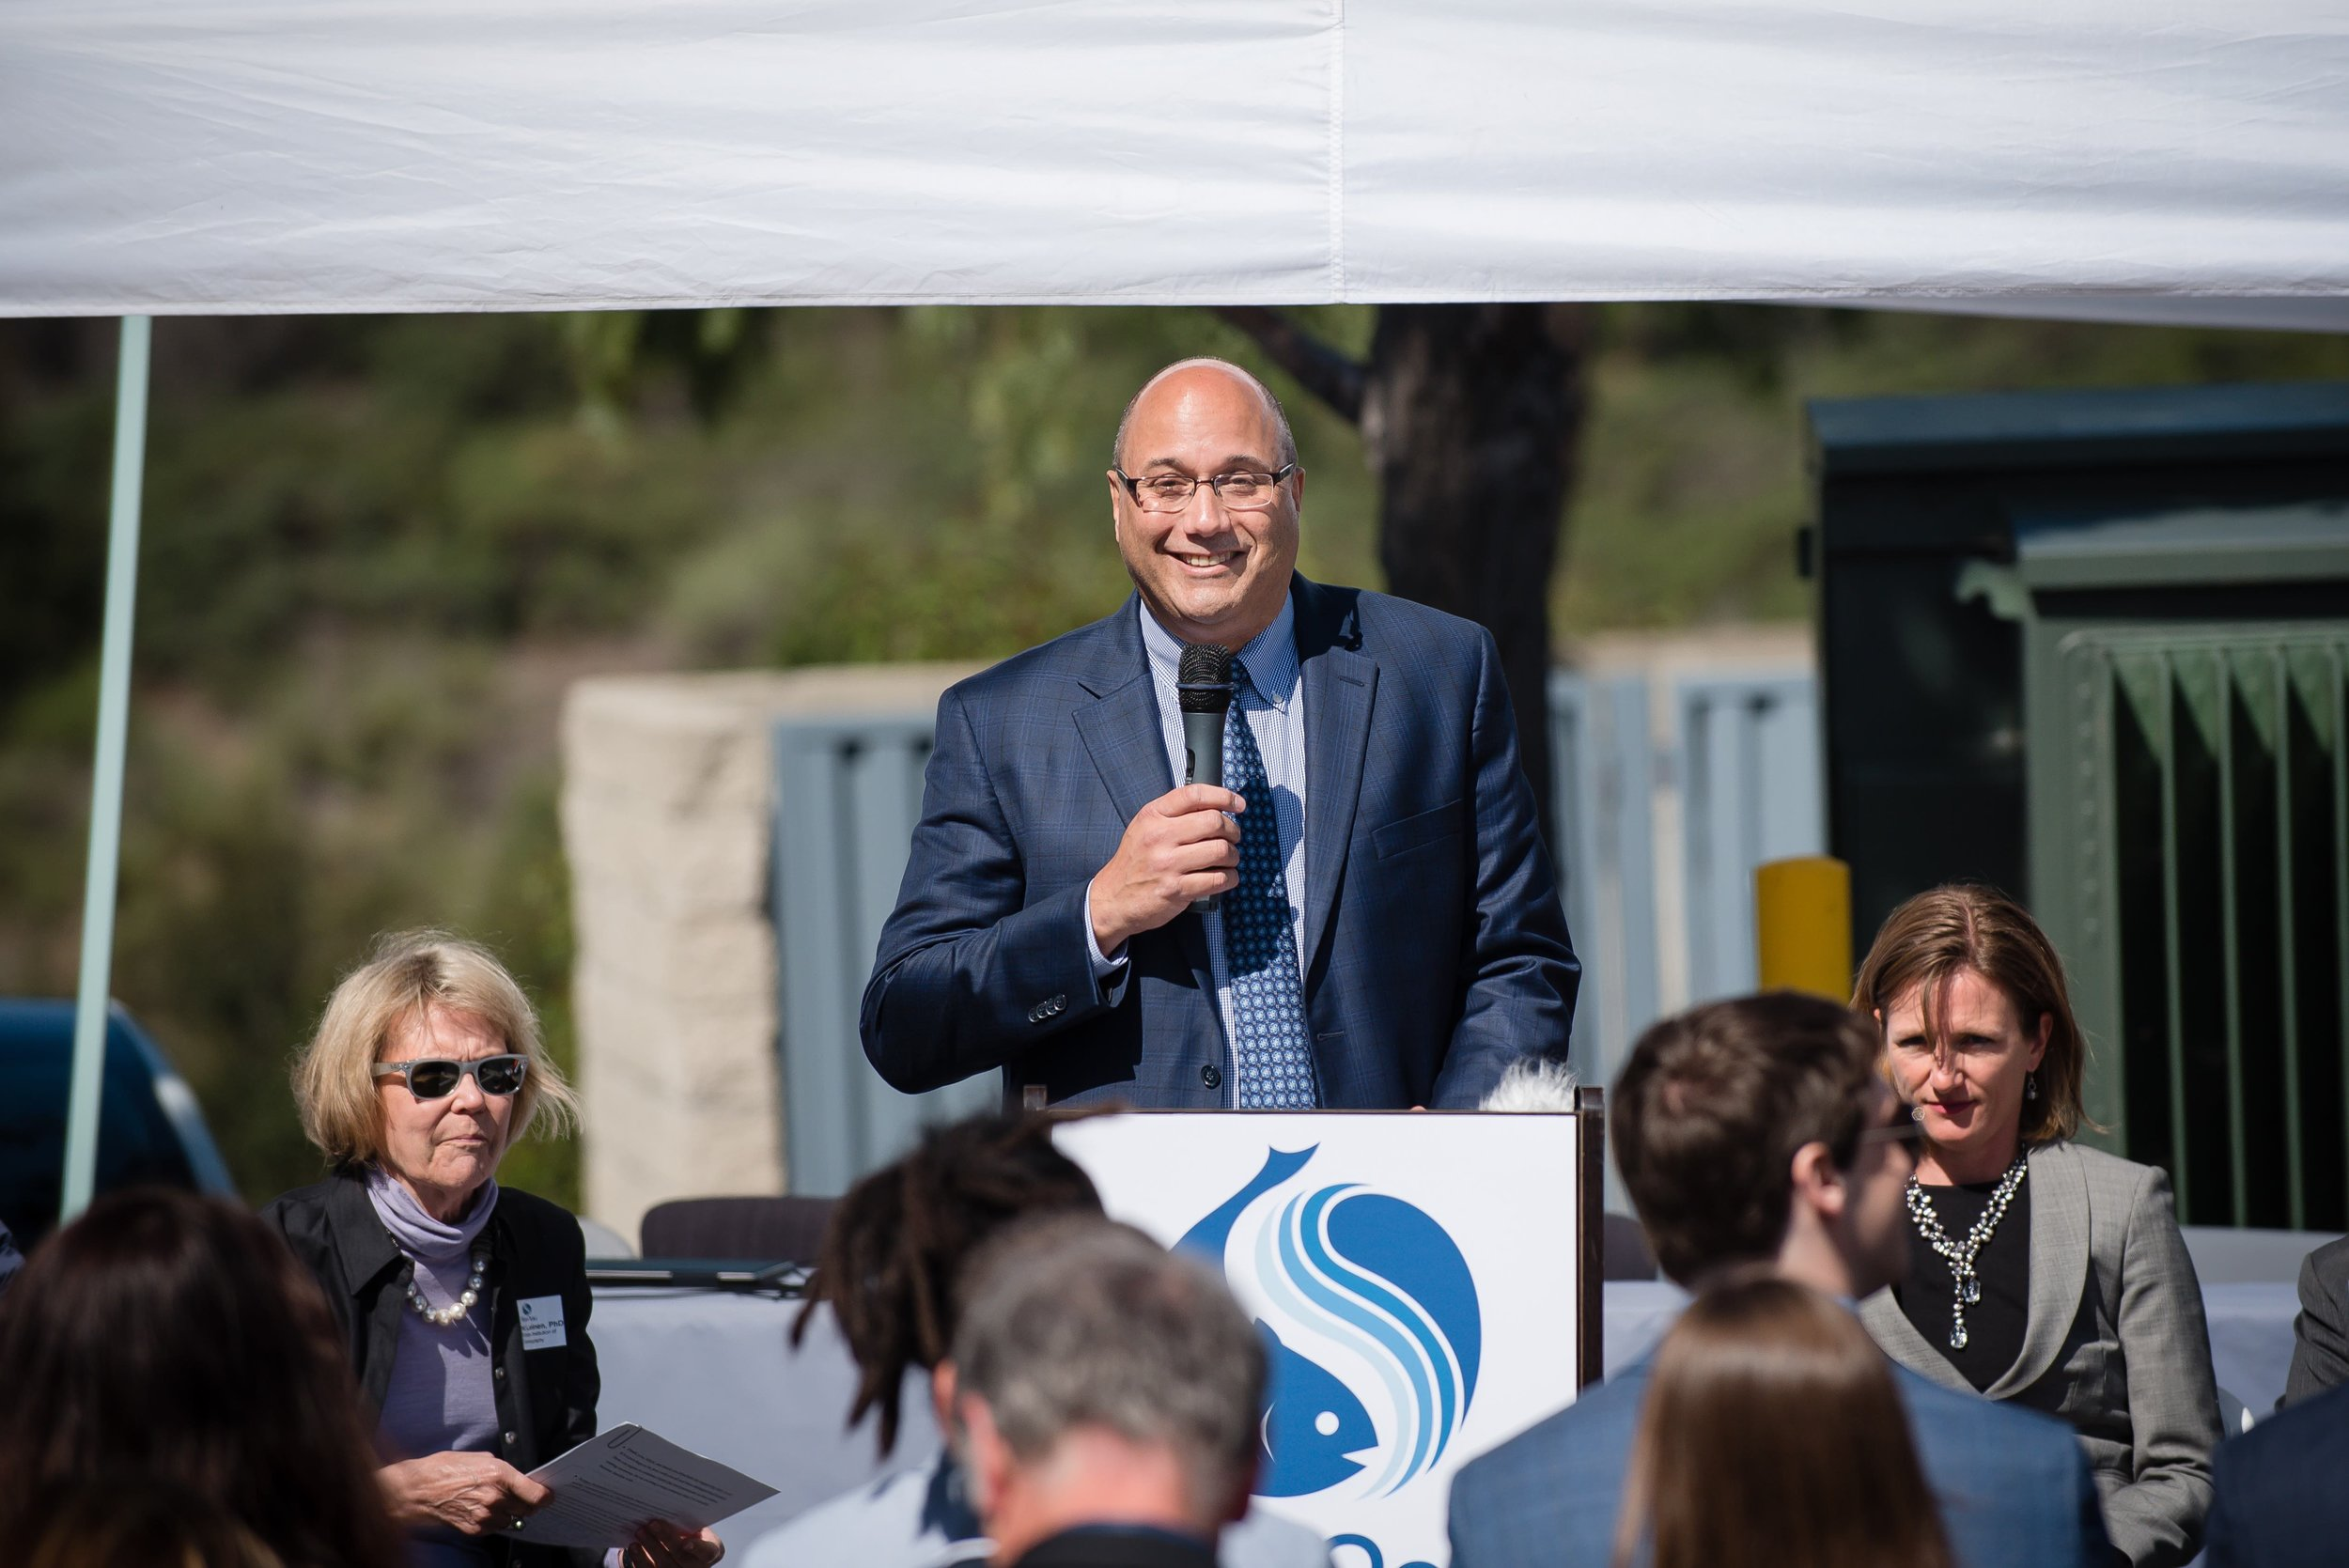 BlueNalu CEO Lou Cooperhouse addressing San Diego officials and the media at the BlueNalu Ribbon Cutting Ceremony, Earth Day, April 22, 2019.